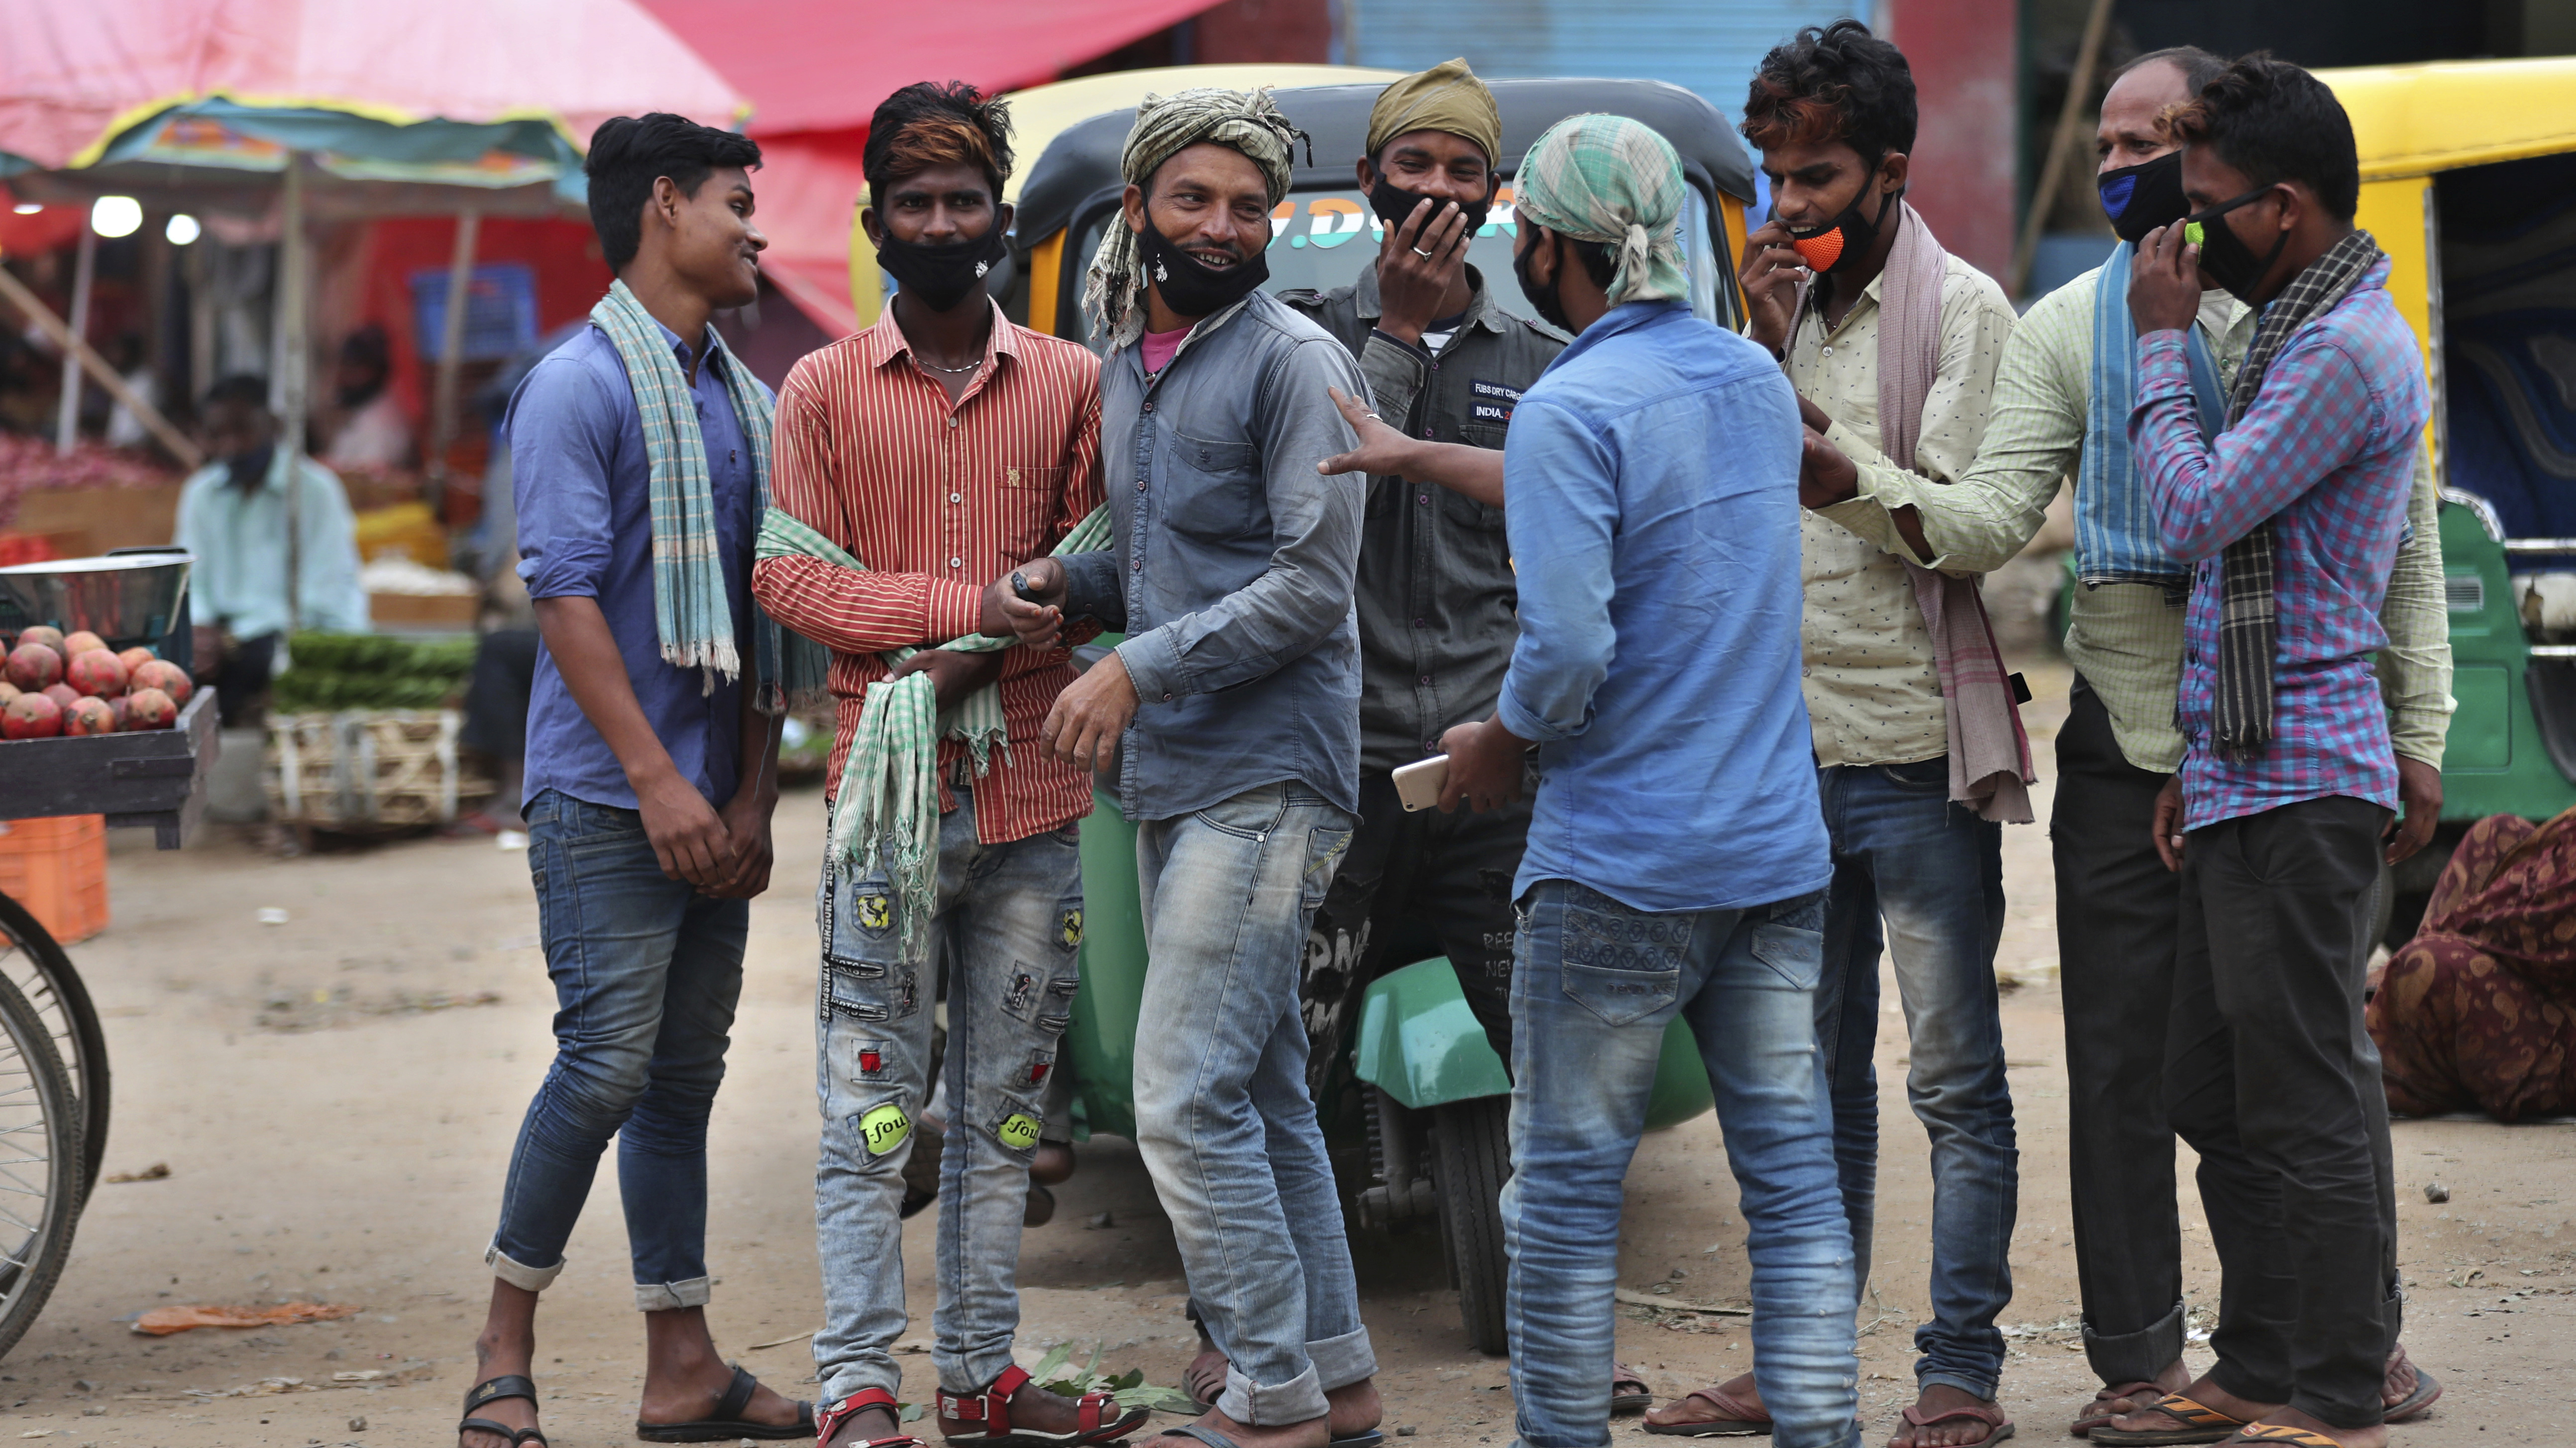 Daily wage laborers wearing face masks as a precaution against the coronavirus stand together as they wait for work at a wholesale market in Bengaluru, India,